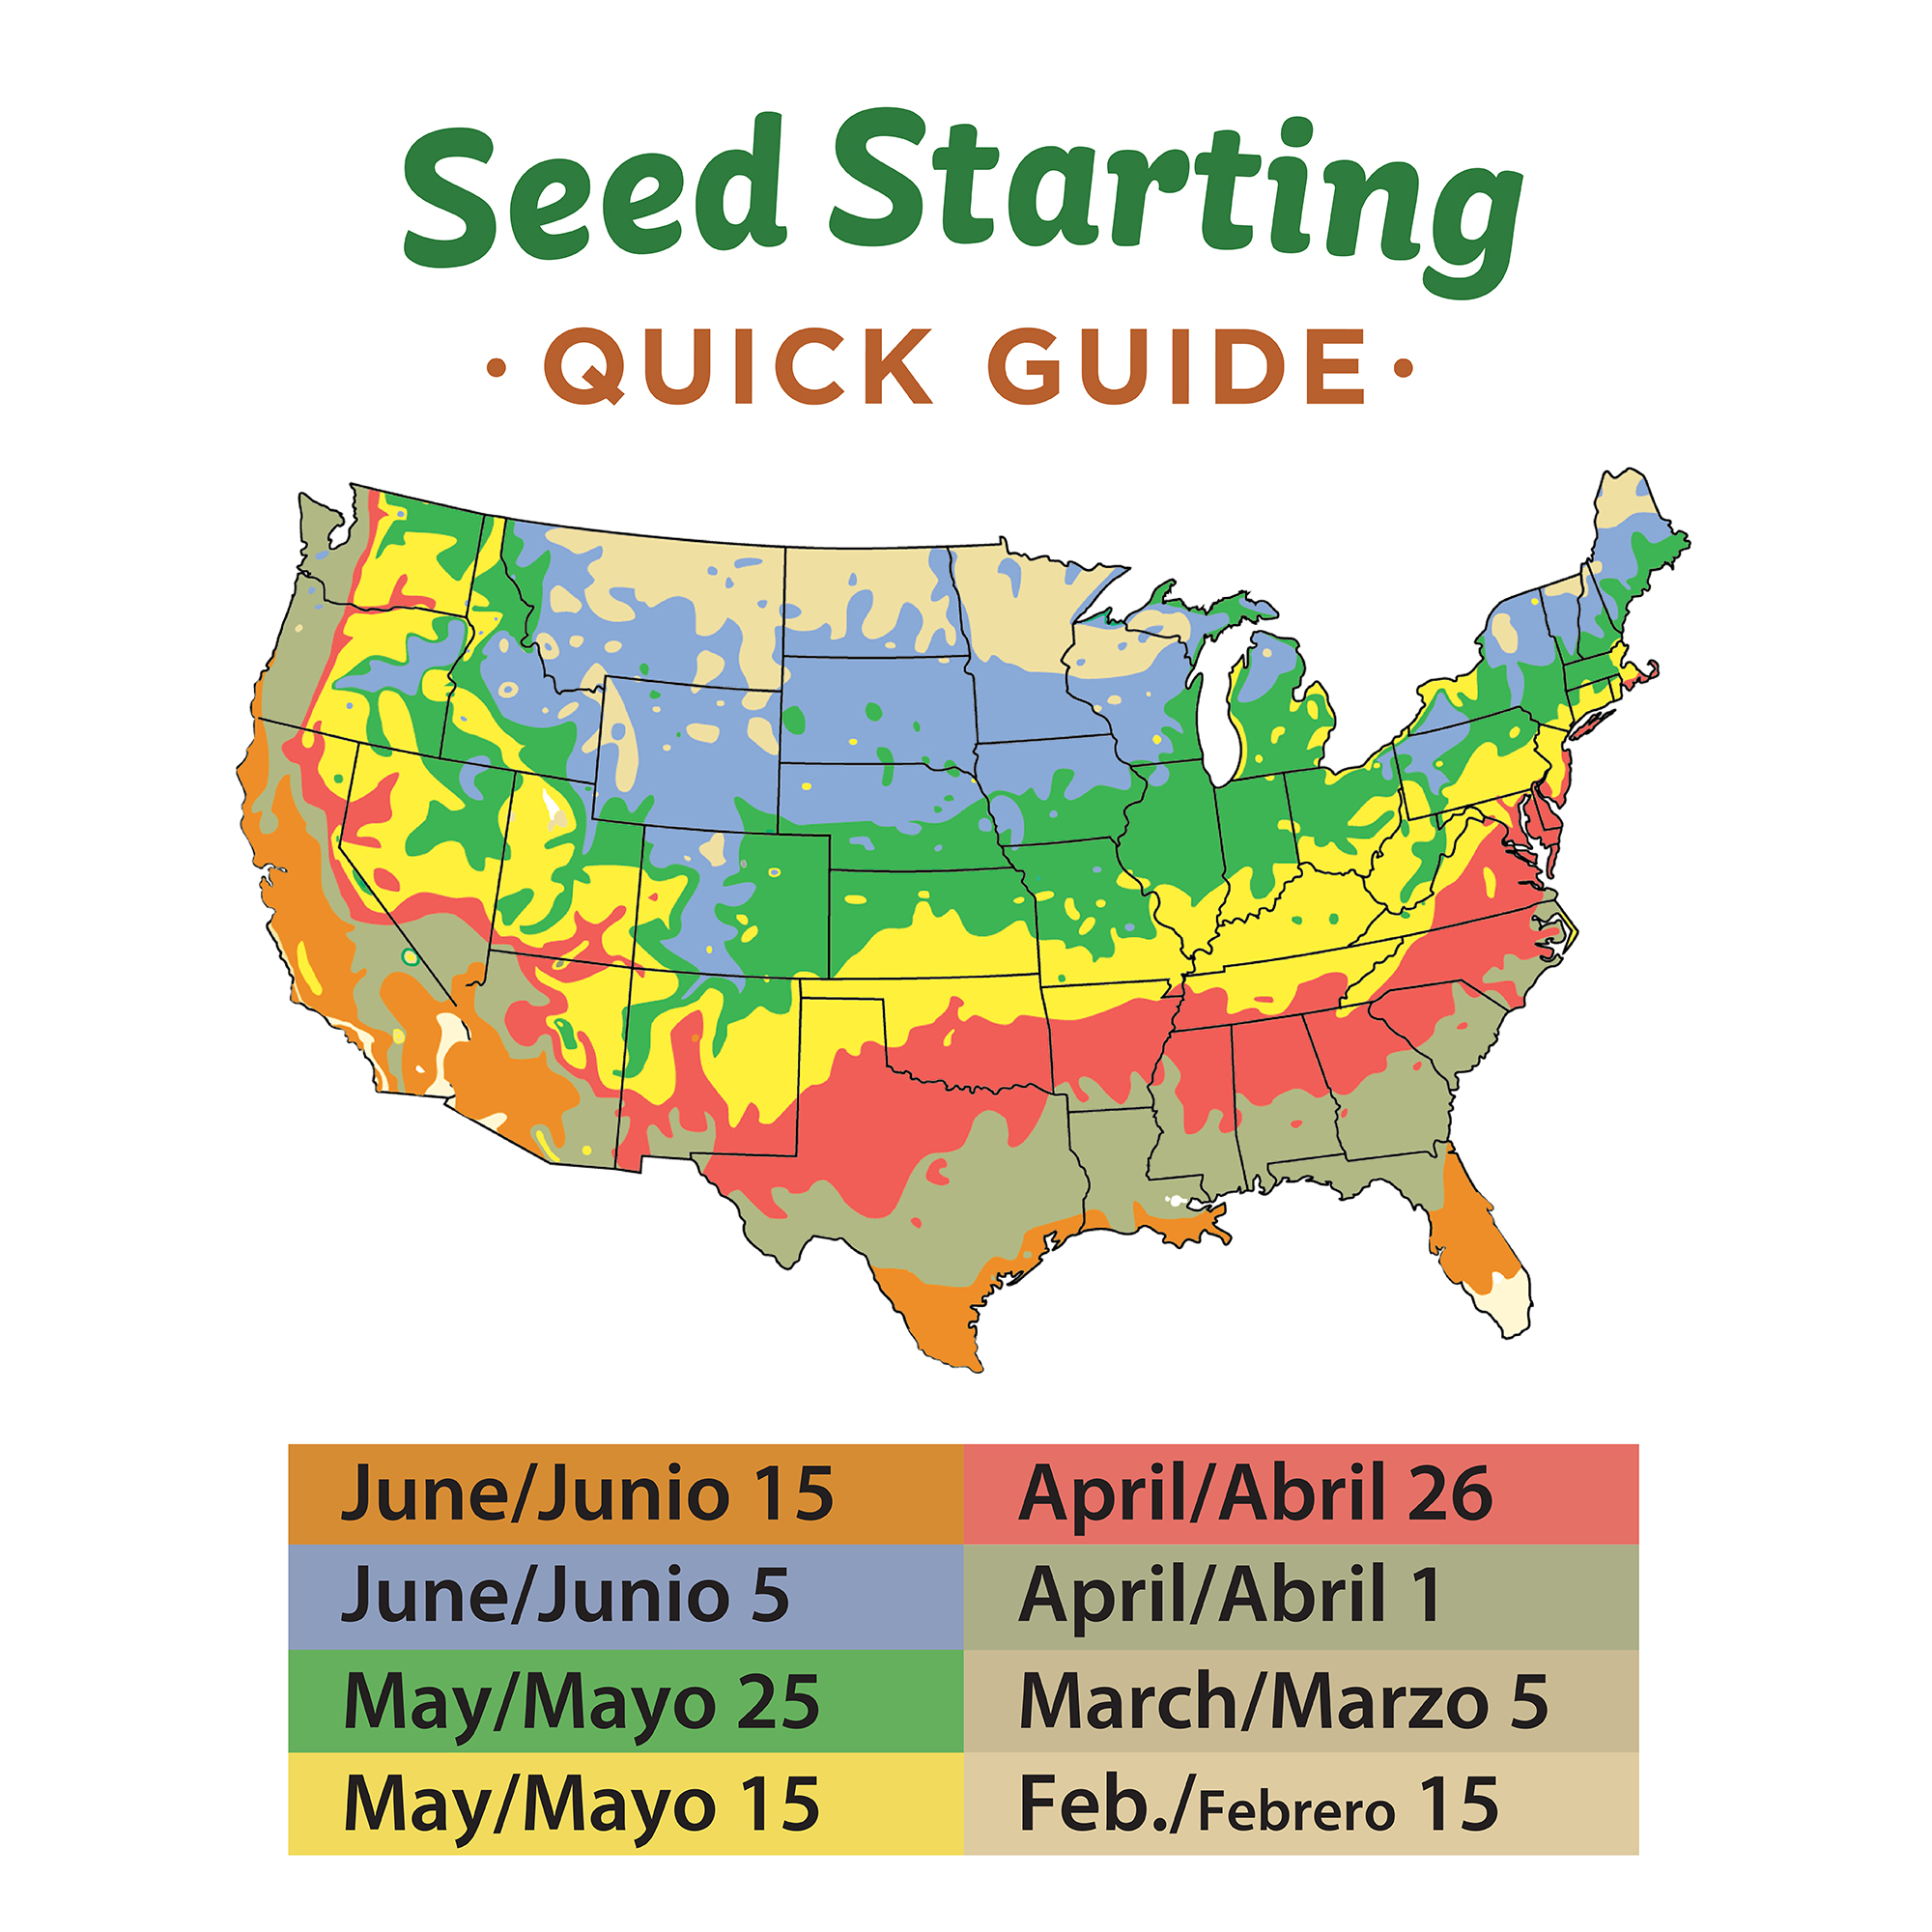 Seed Starting Quick Guide